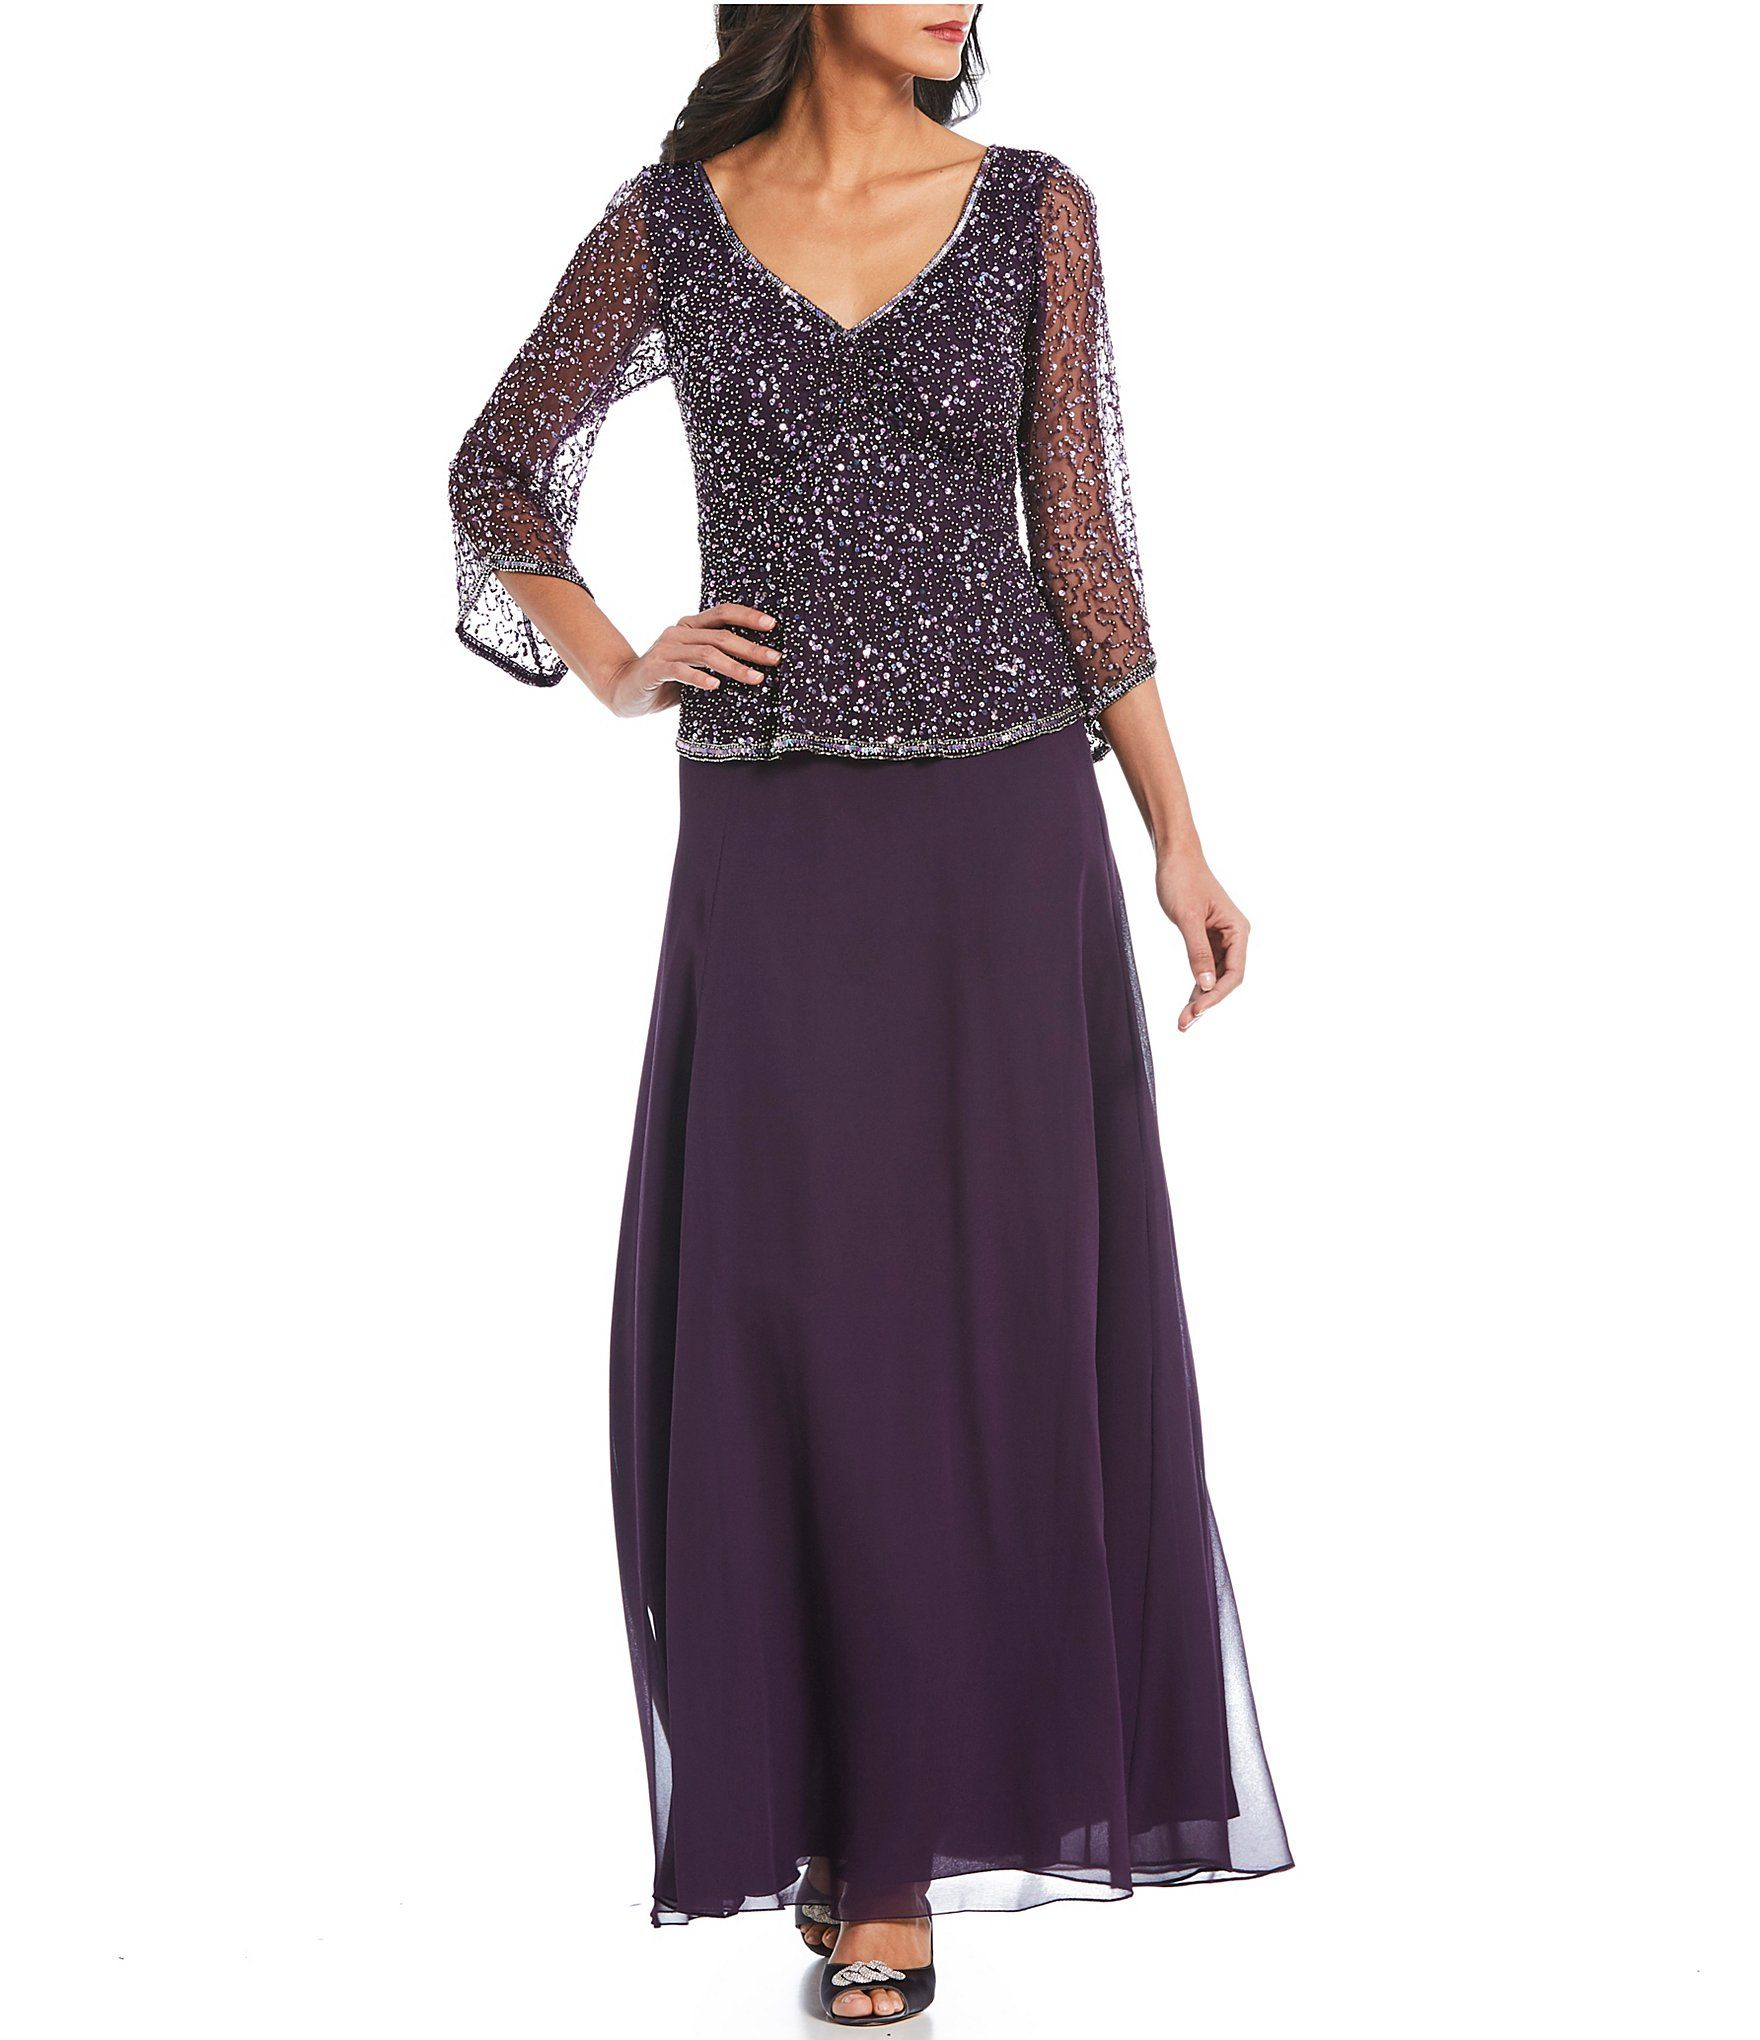 0830812bf3d Shop for Jkara V-Neck Sequin Bodice Gown at Dillards.com. Visit  Dillards.com to find clothing